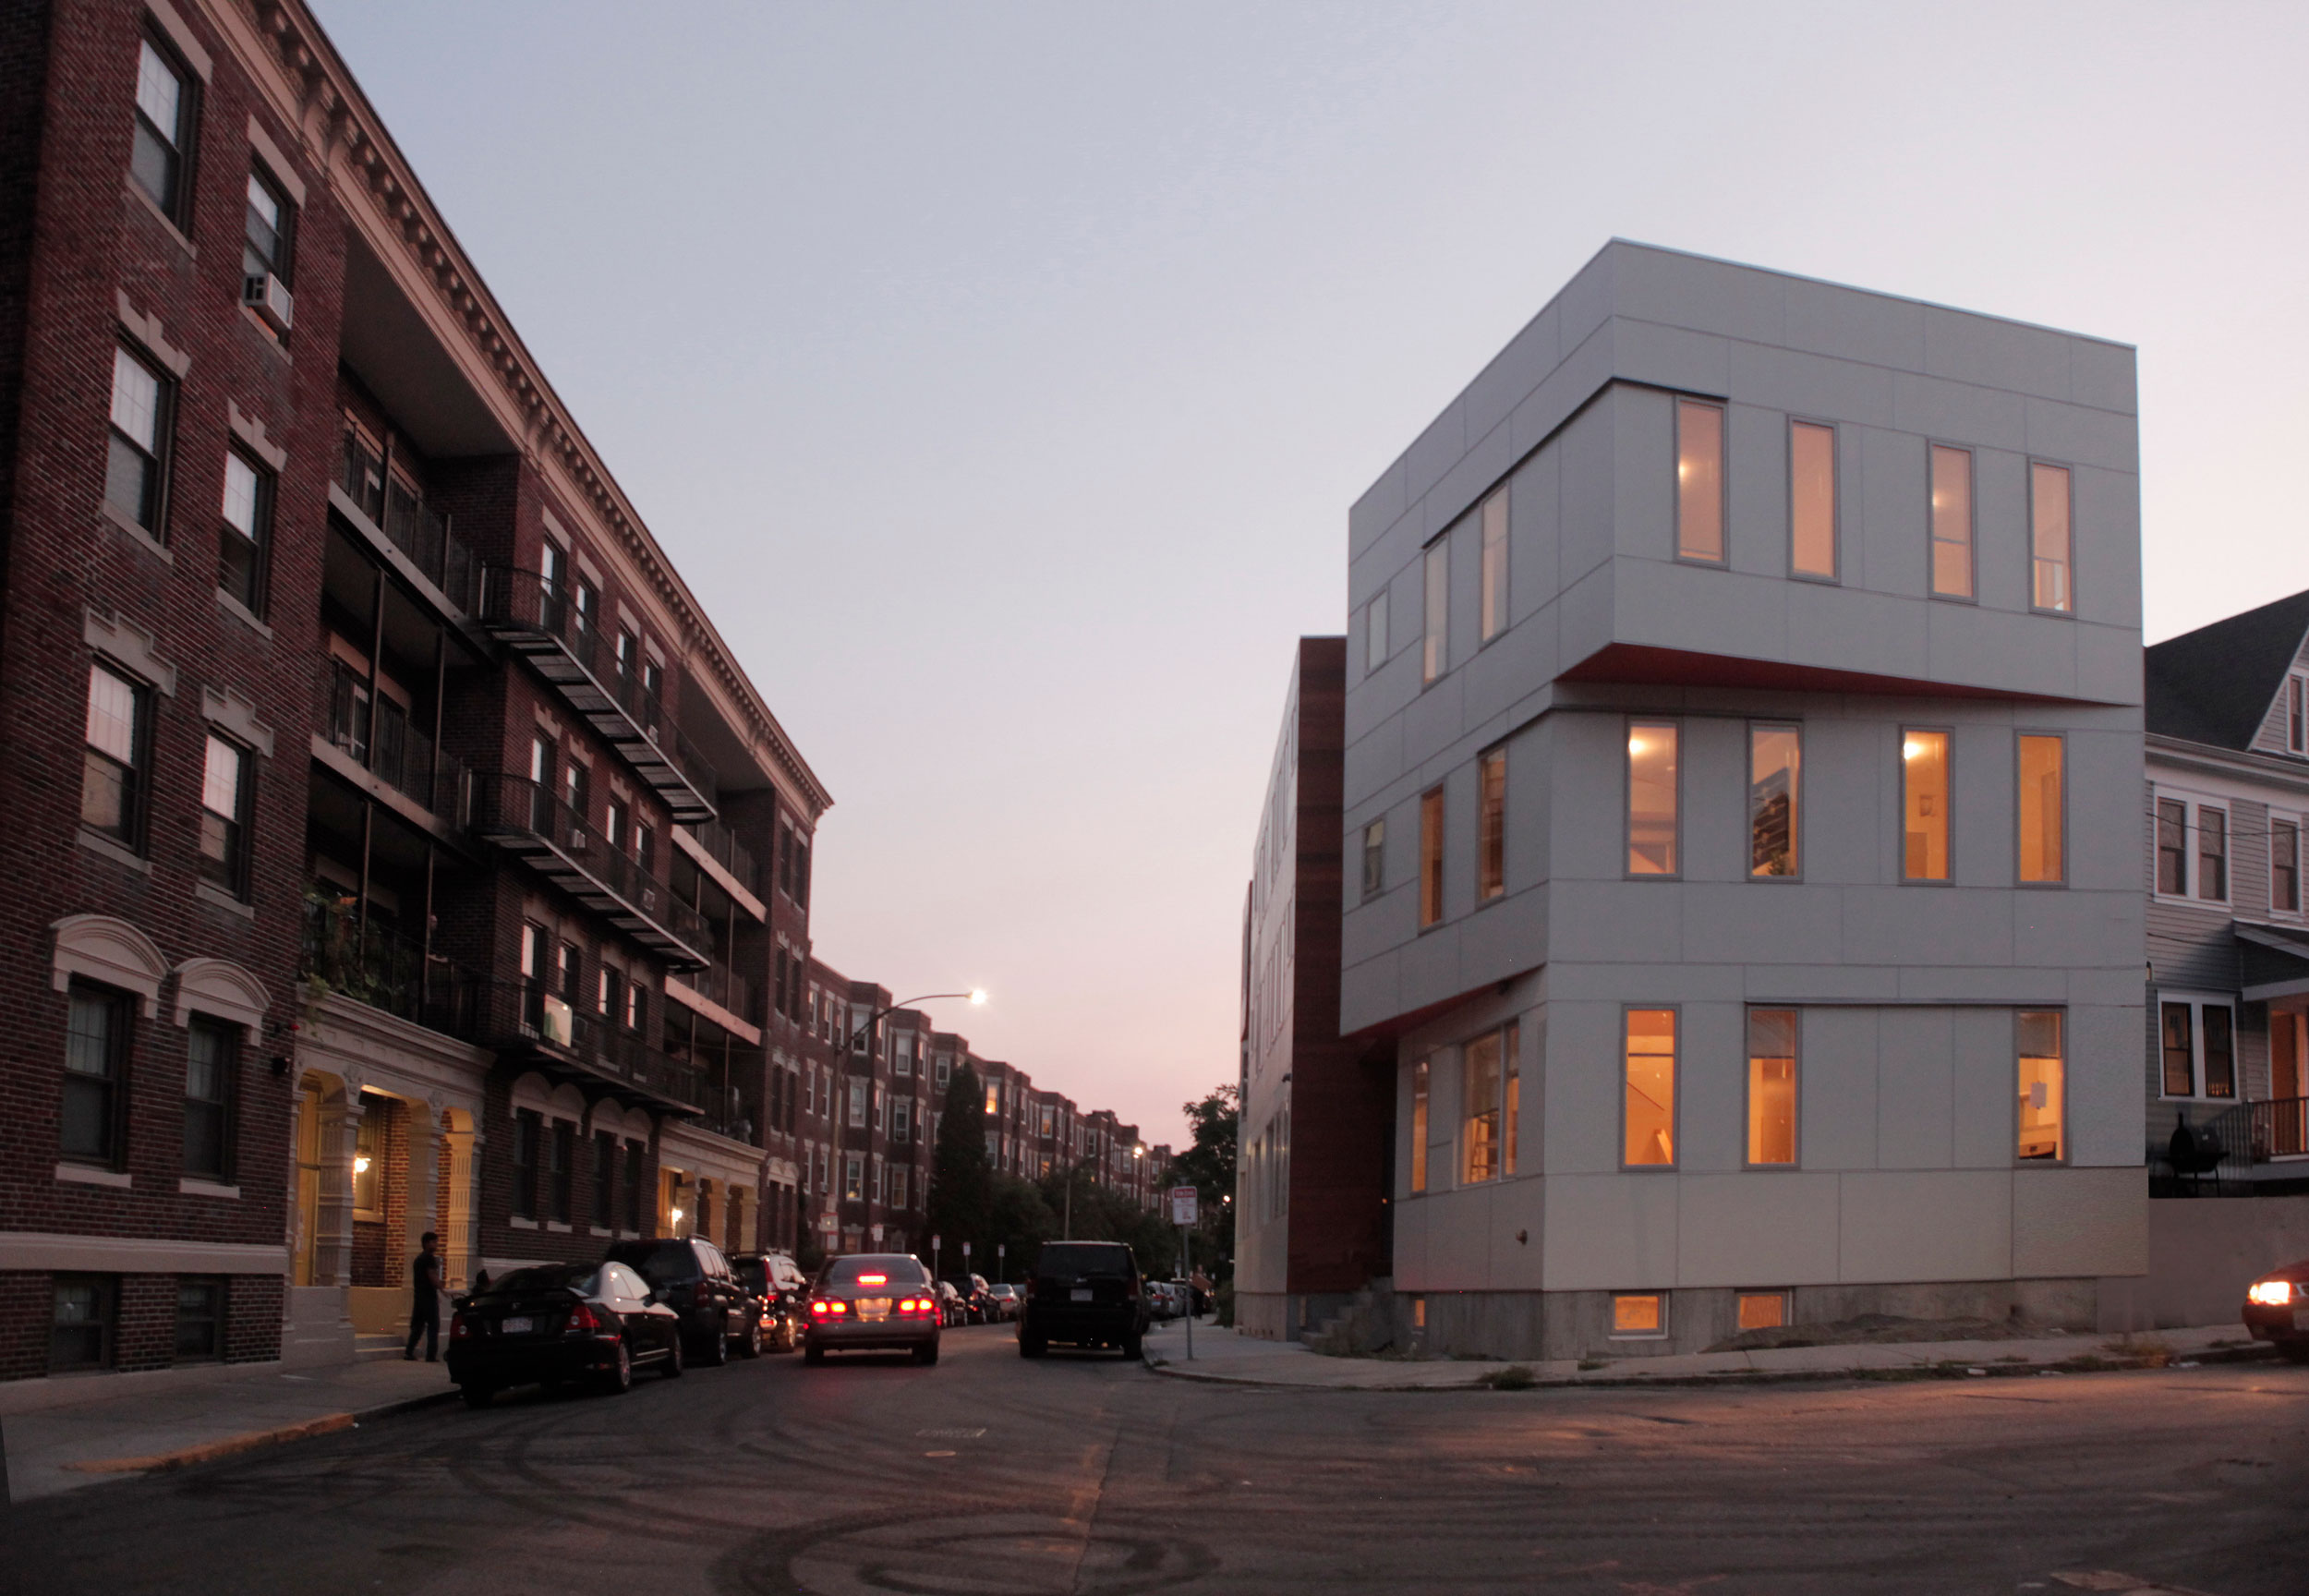 Glenville Townhomes by RODE Architects. Photo: RODE Architects.